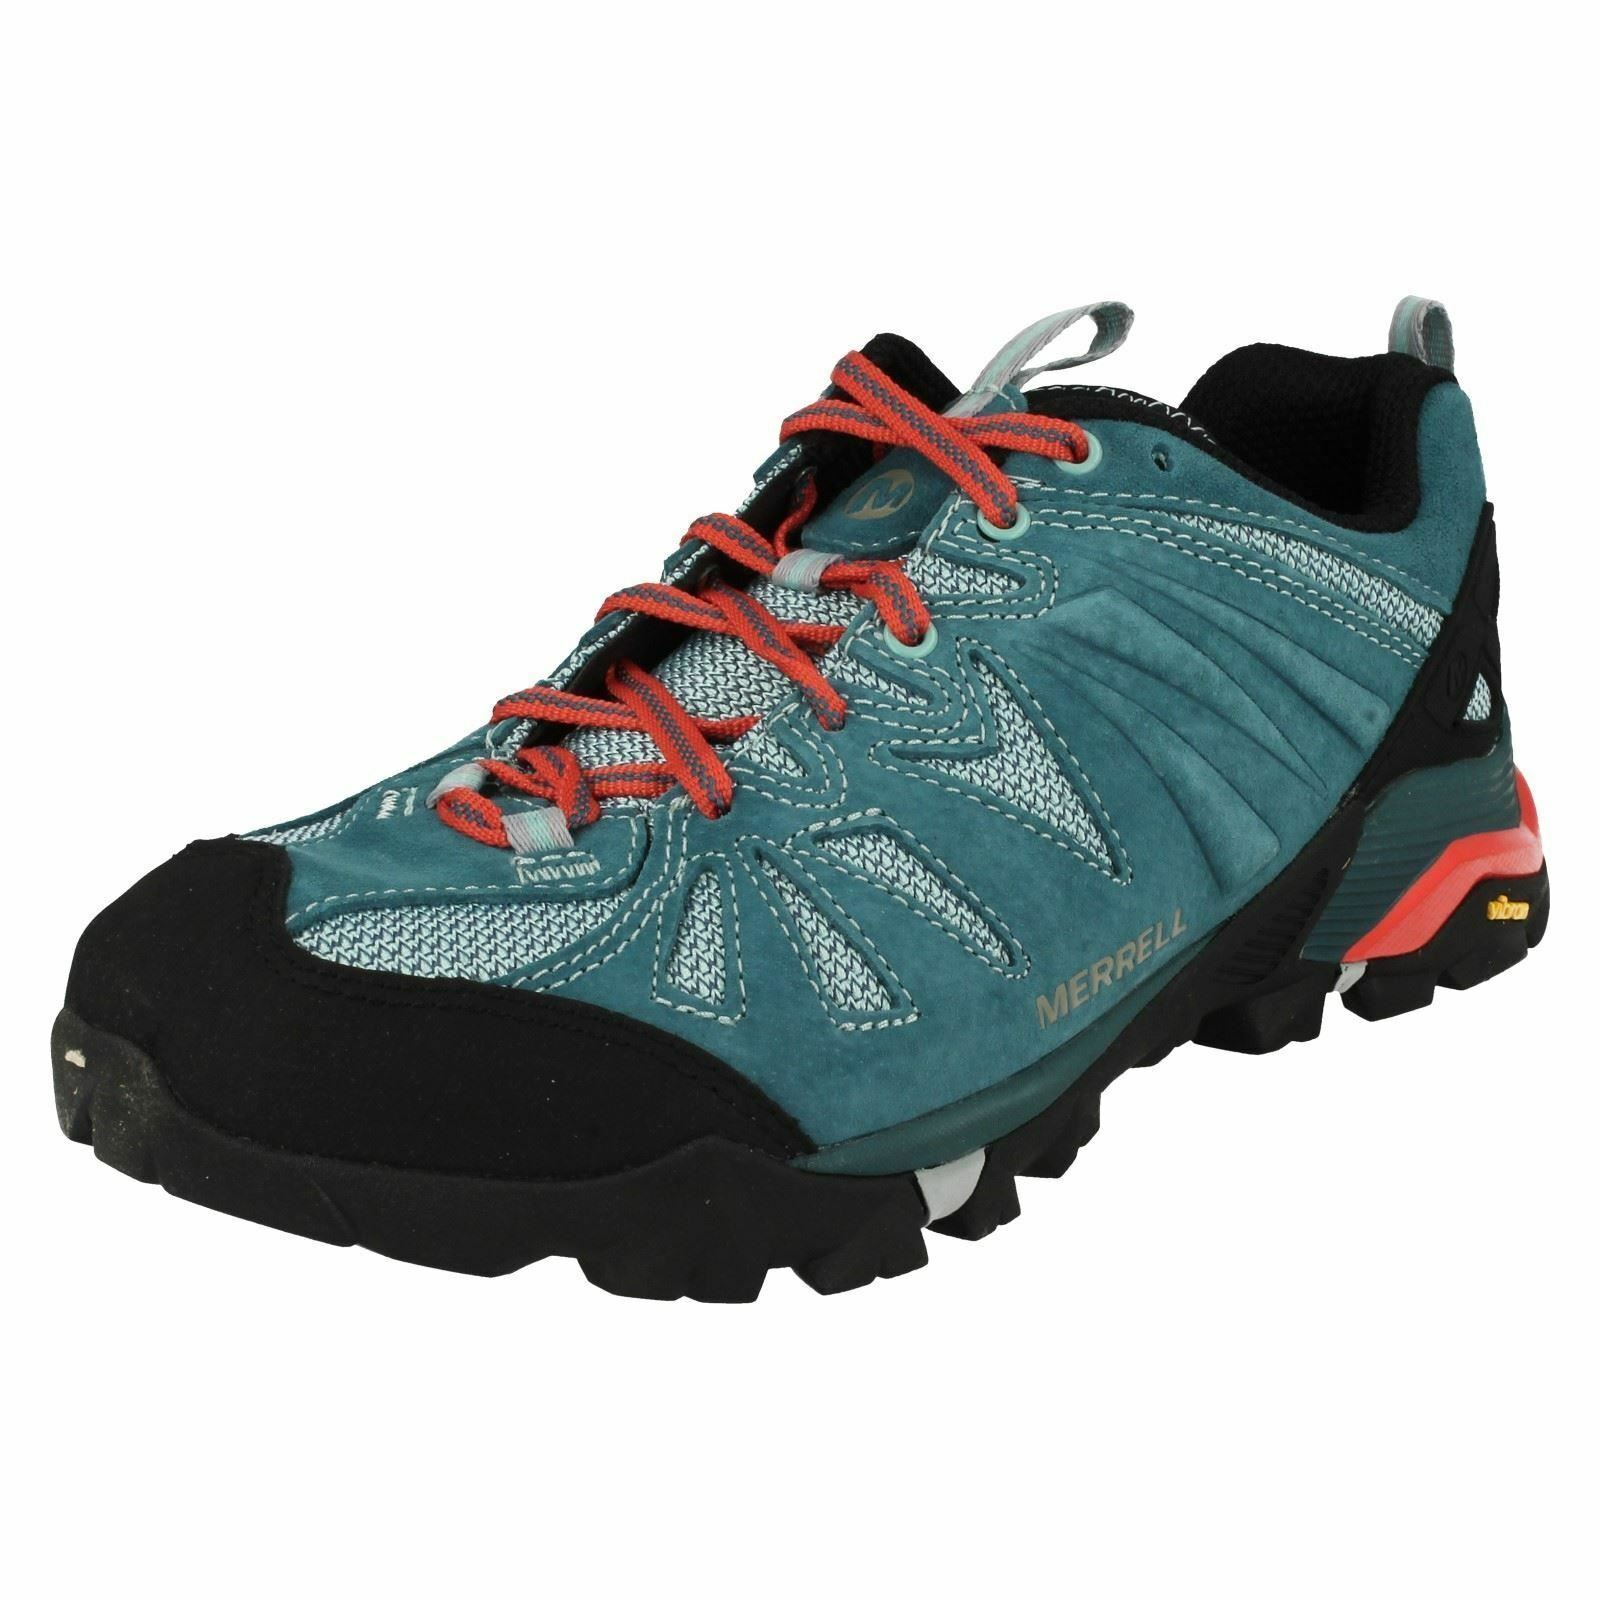 LADIES MERRELL CAPRA LACE UP LEATHER WALKING HIKING TRAINERS SHOES